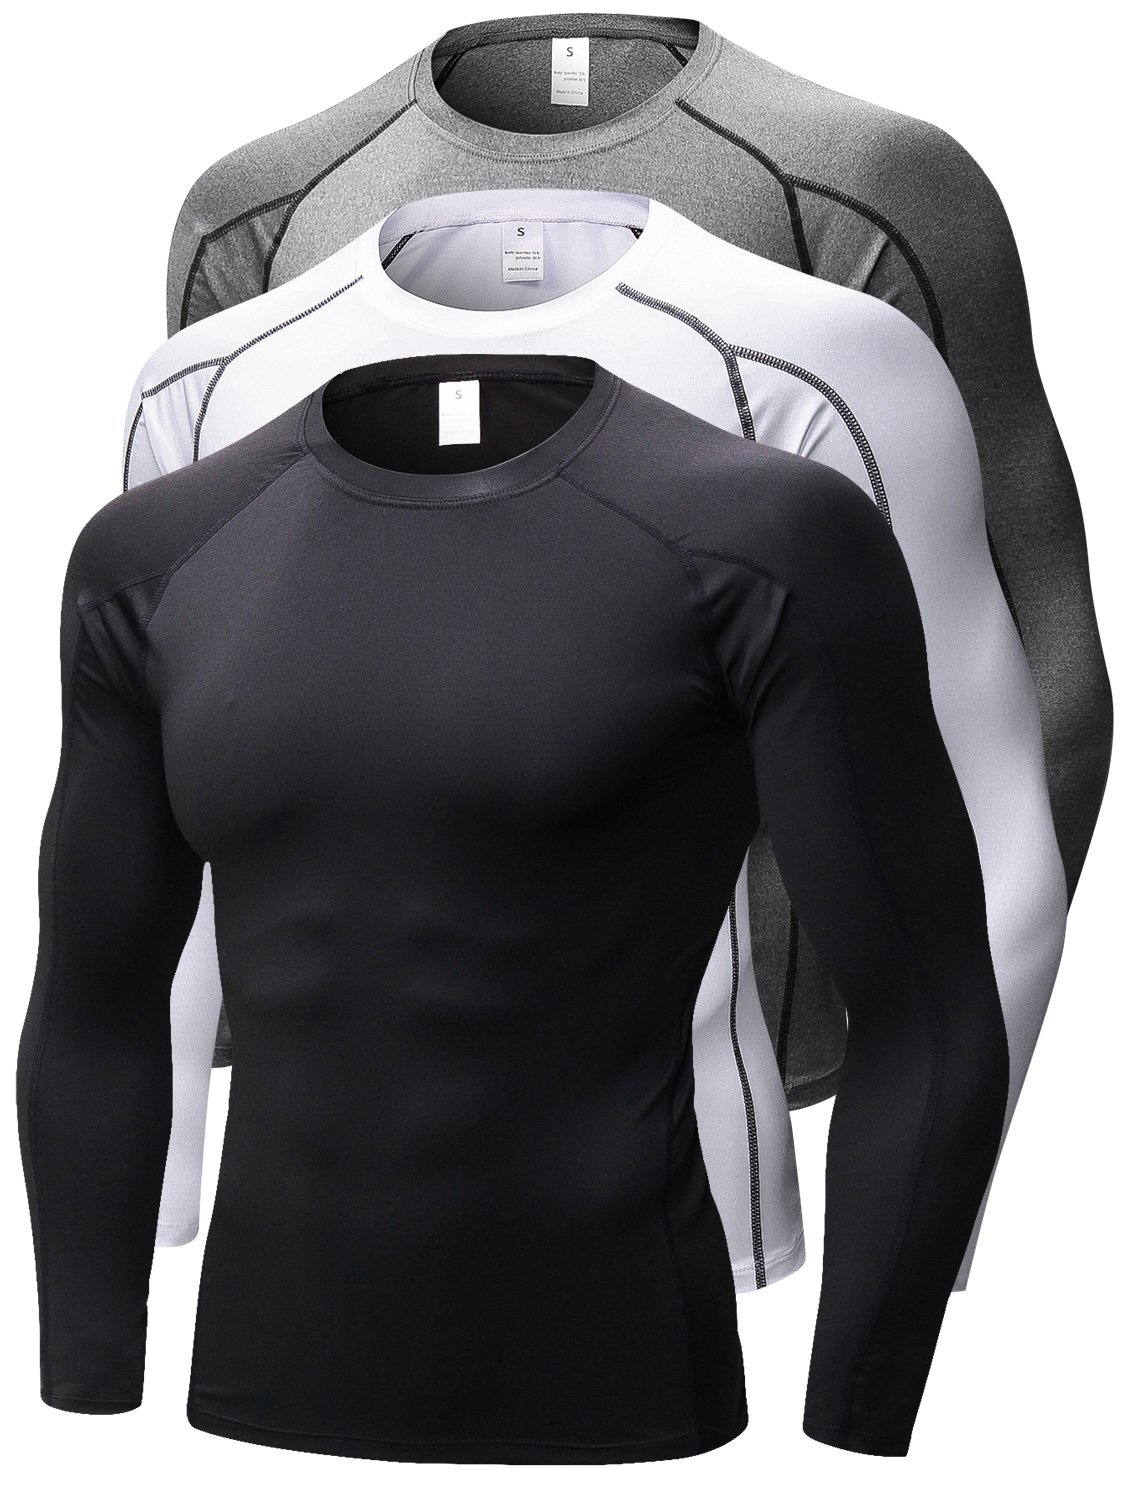 Queerier Men's Compression Shirts Baselayer Underlayer Top Long Sleeve T-Shirt 3 Pack